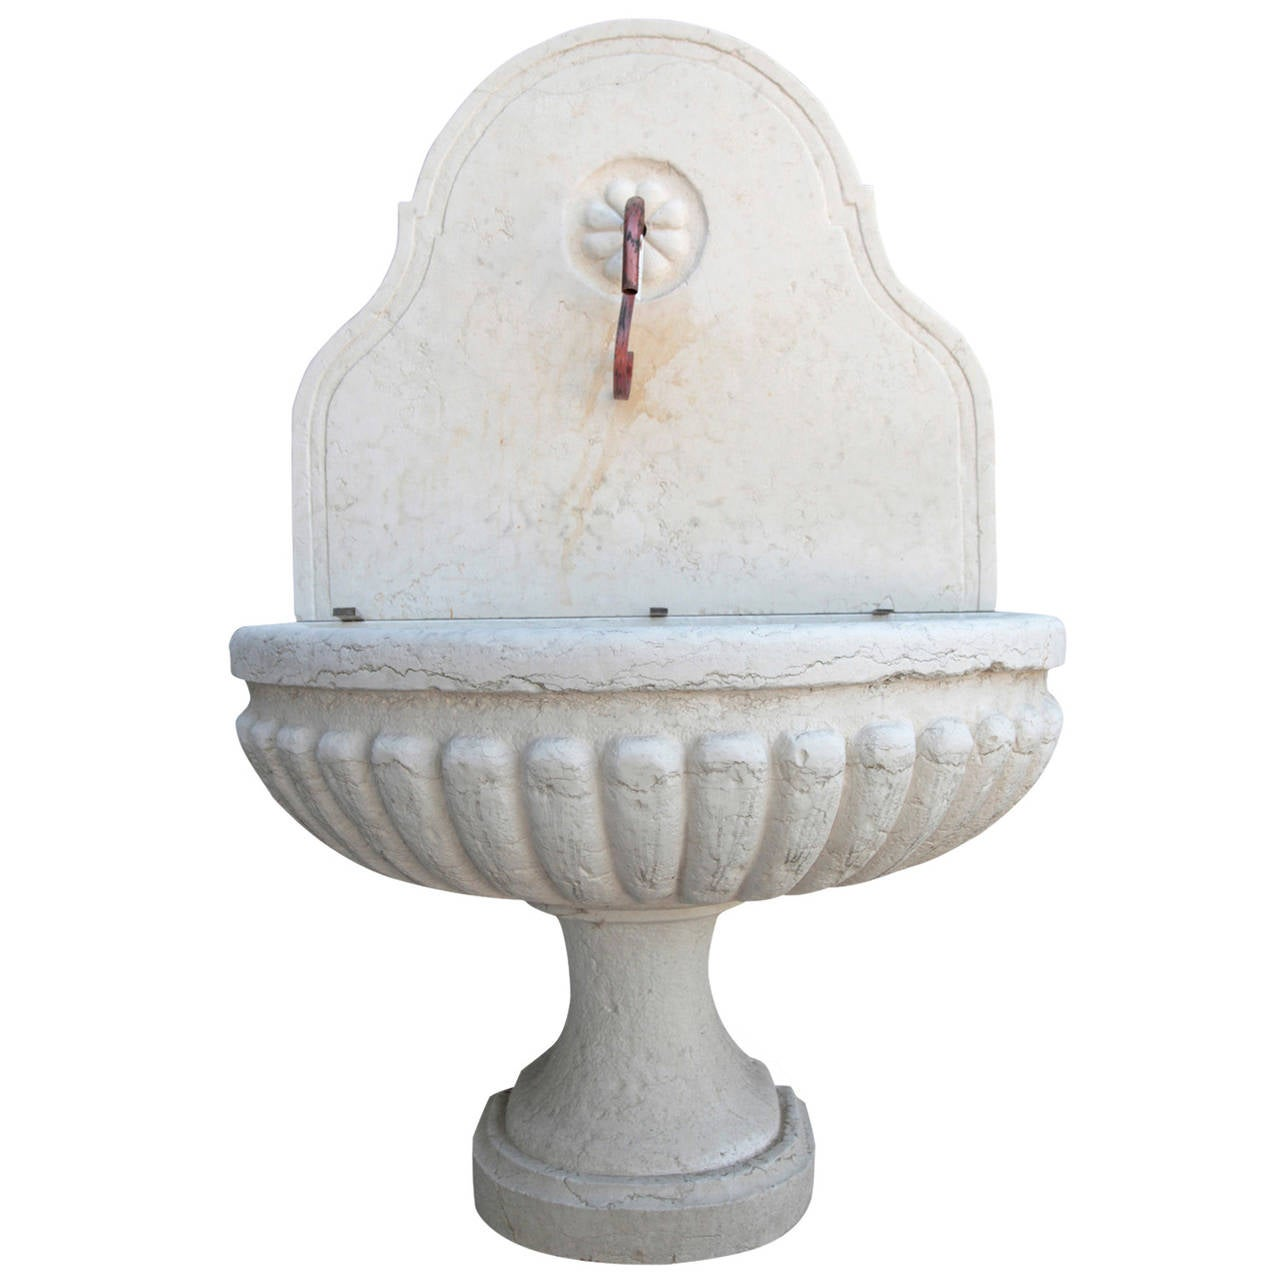 Marble Wall Fountain from the 20th Century.